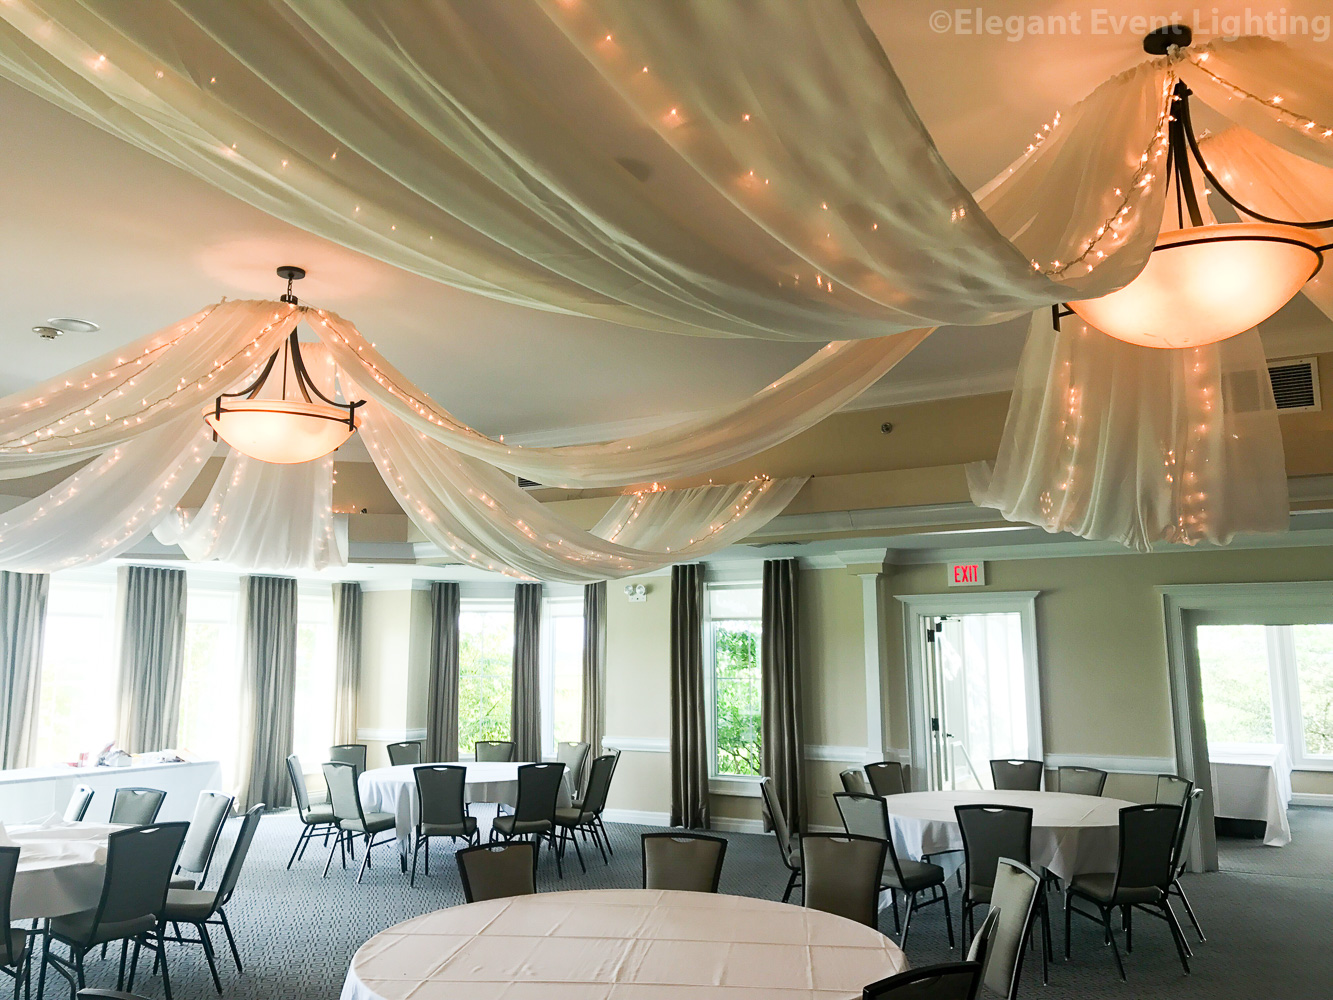 What S New This Week Elegant Event Lighting